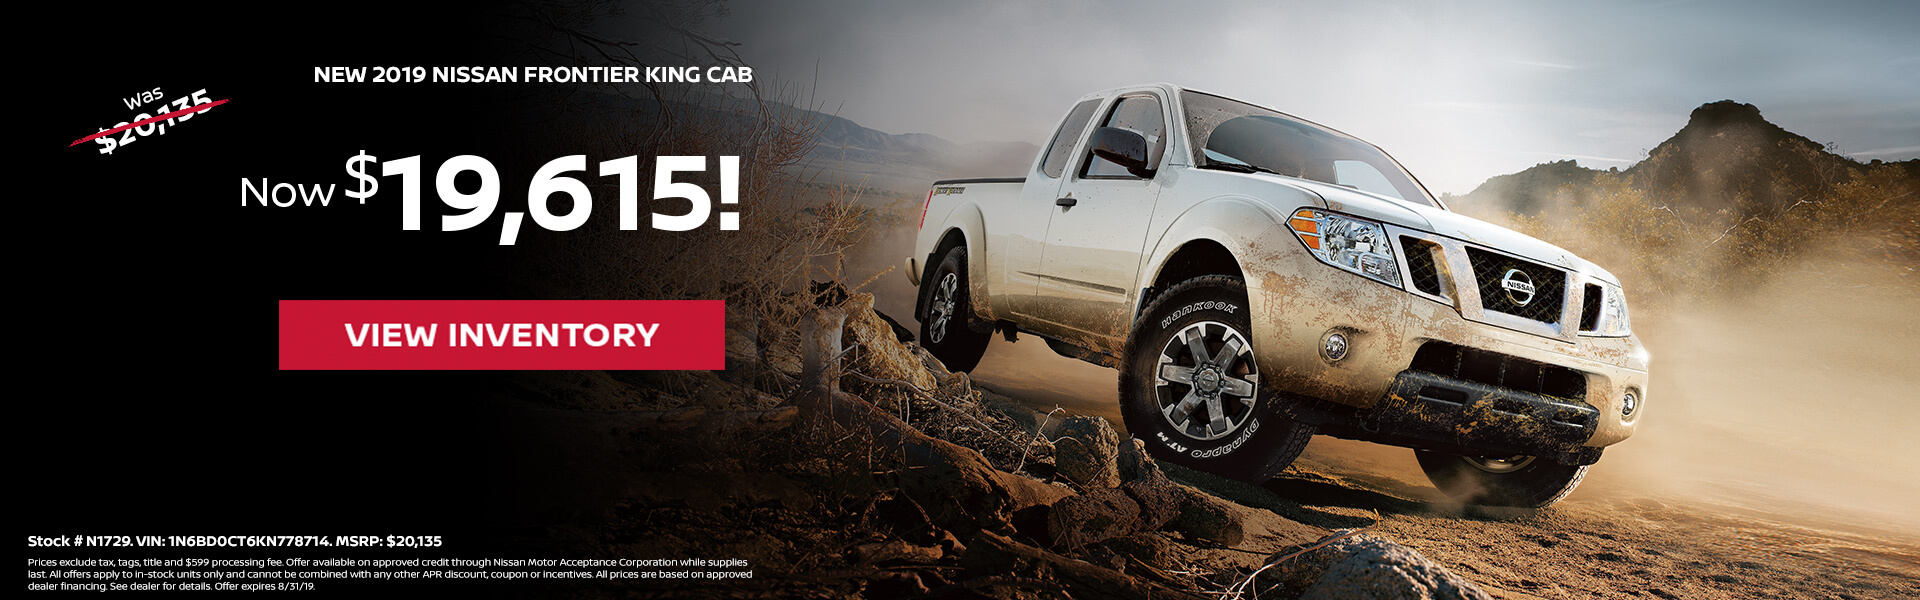 Nissan Frontier $19,615 Purchase